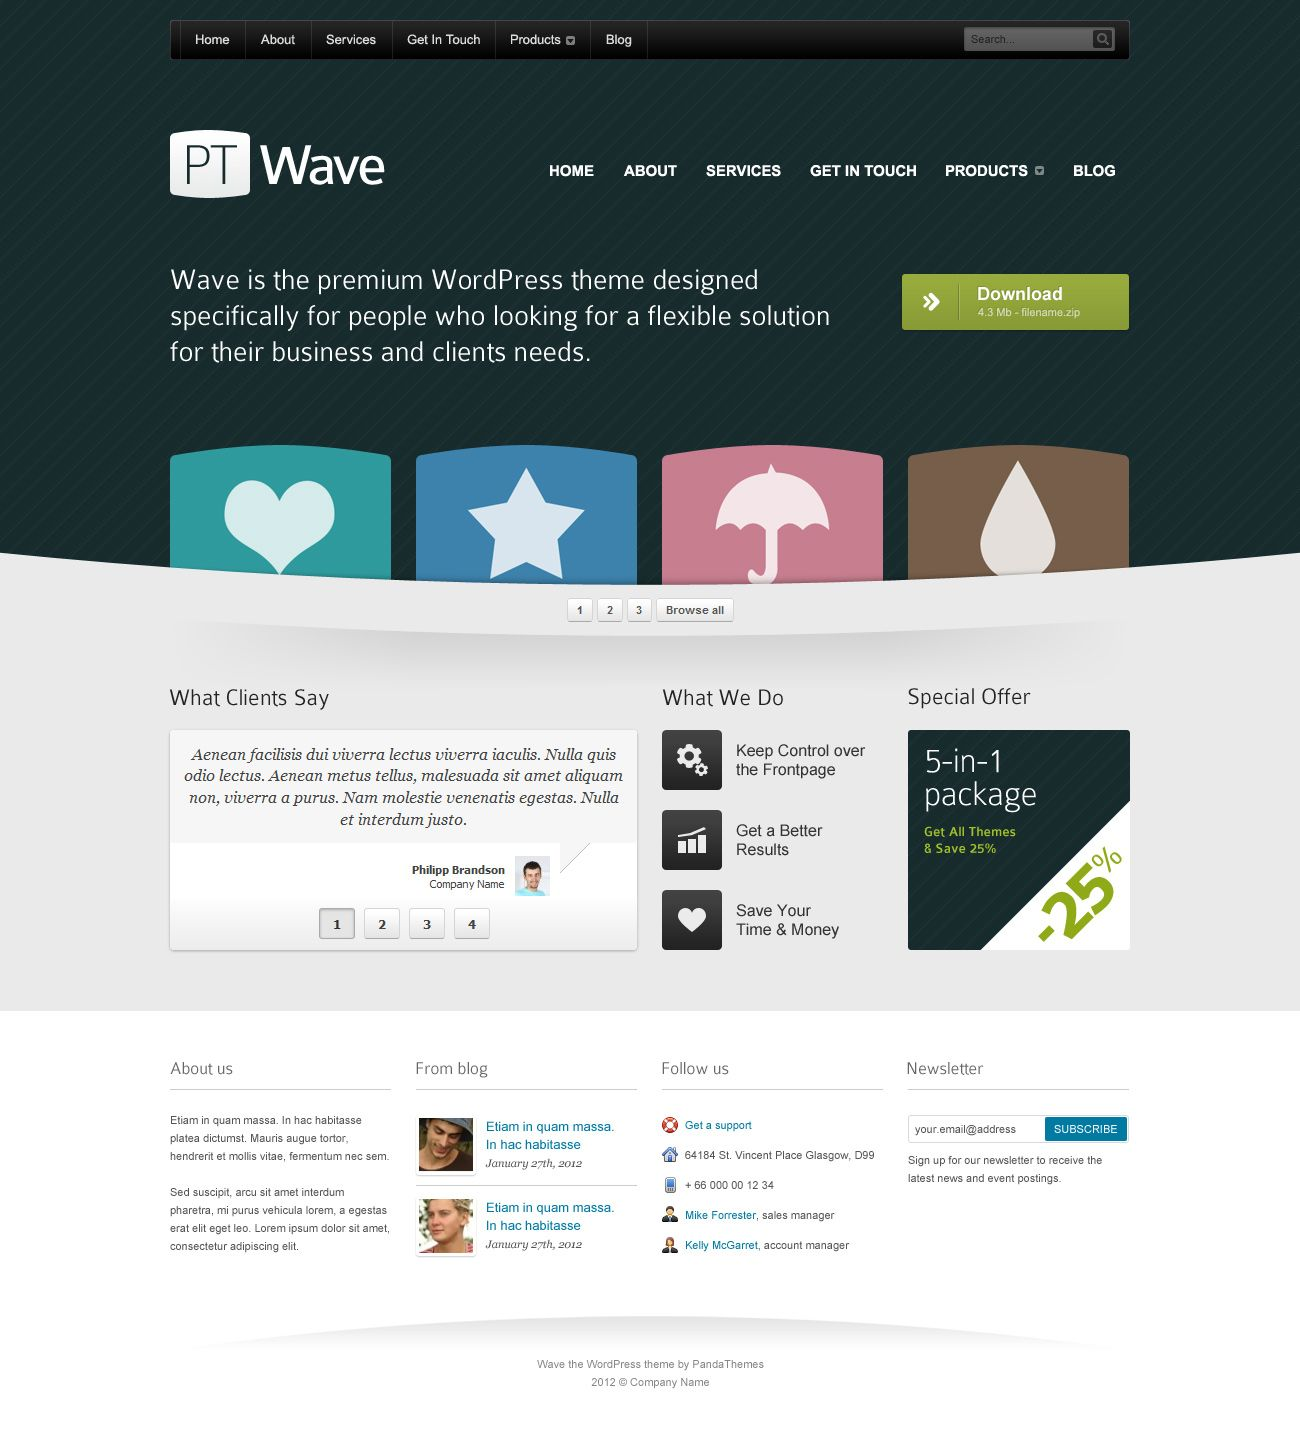 Homepage Template For Corporate Website PSD Web Design Resources - Homepage template